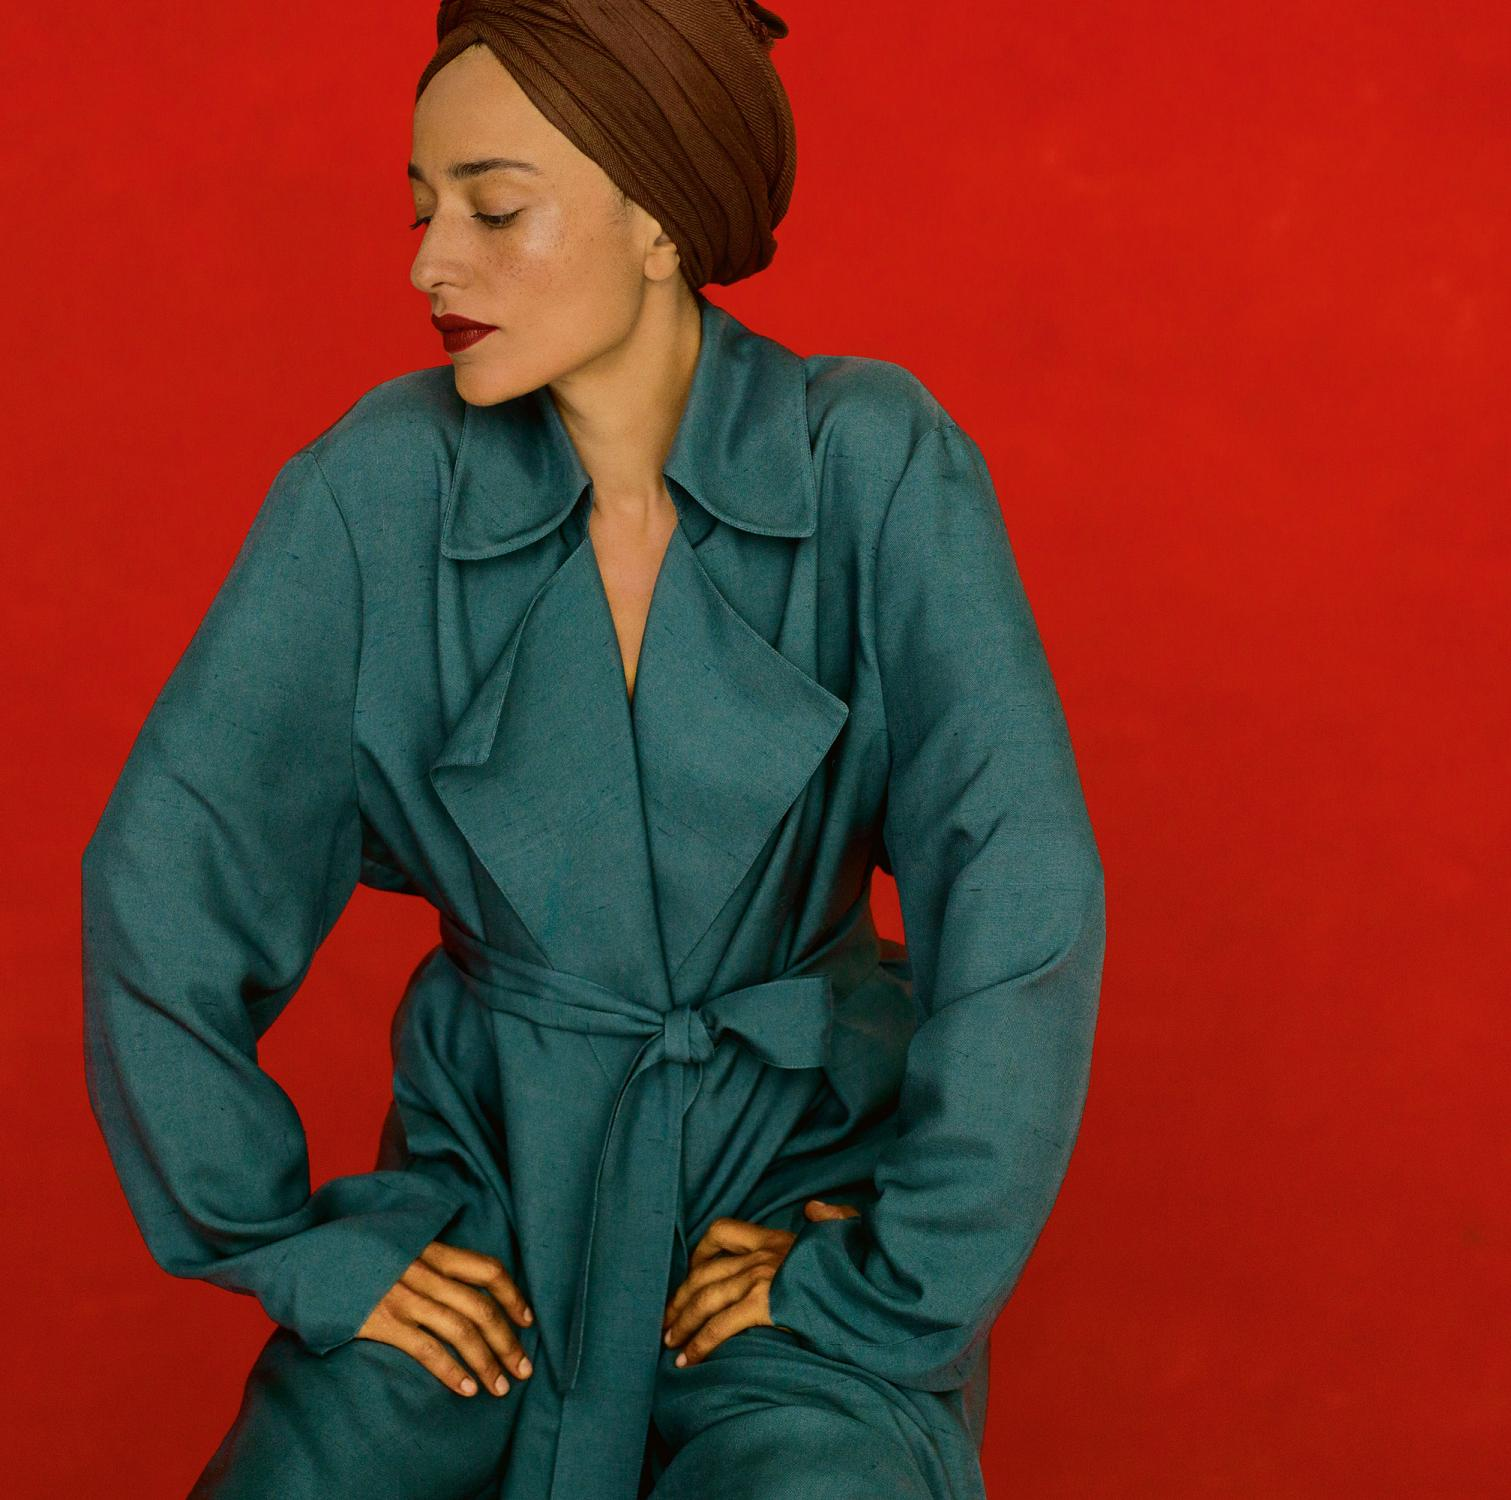 a8f72ad26 Here and in the opening image, Zadie's in a chrome blue extra-fine silk  shantung coat by THE ROW.